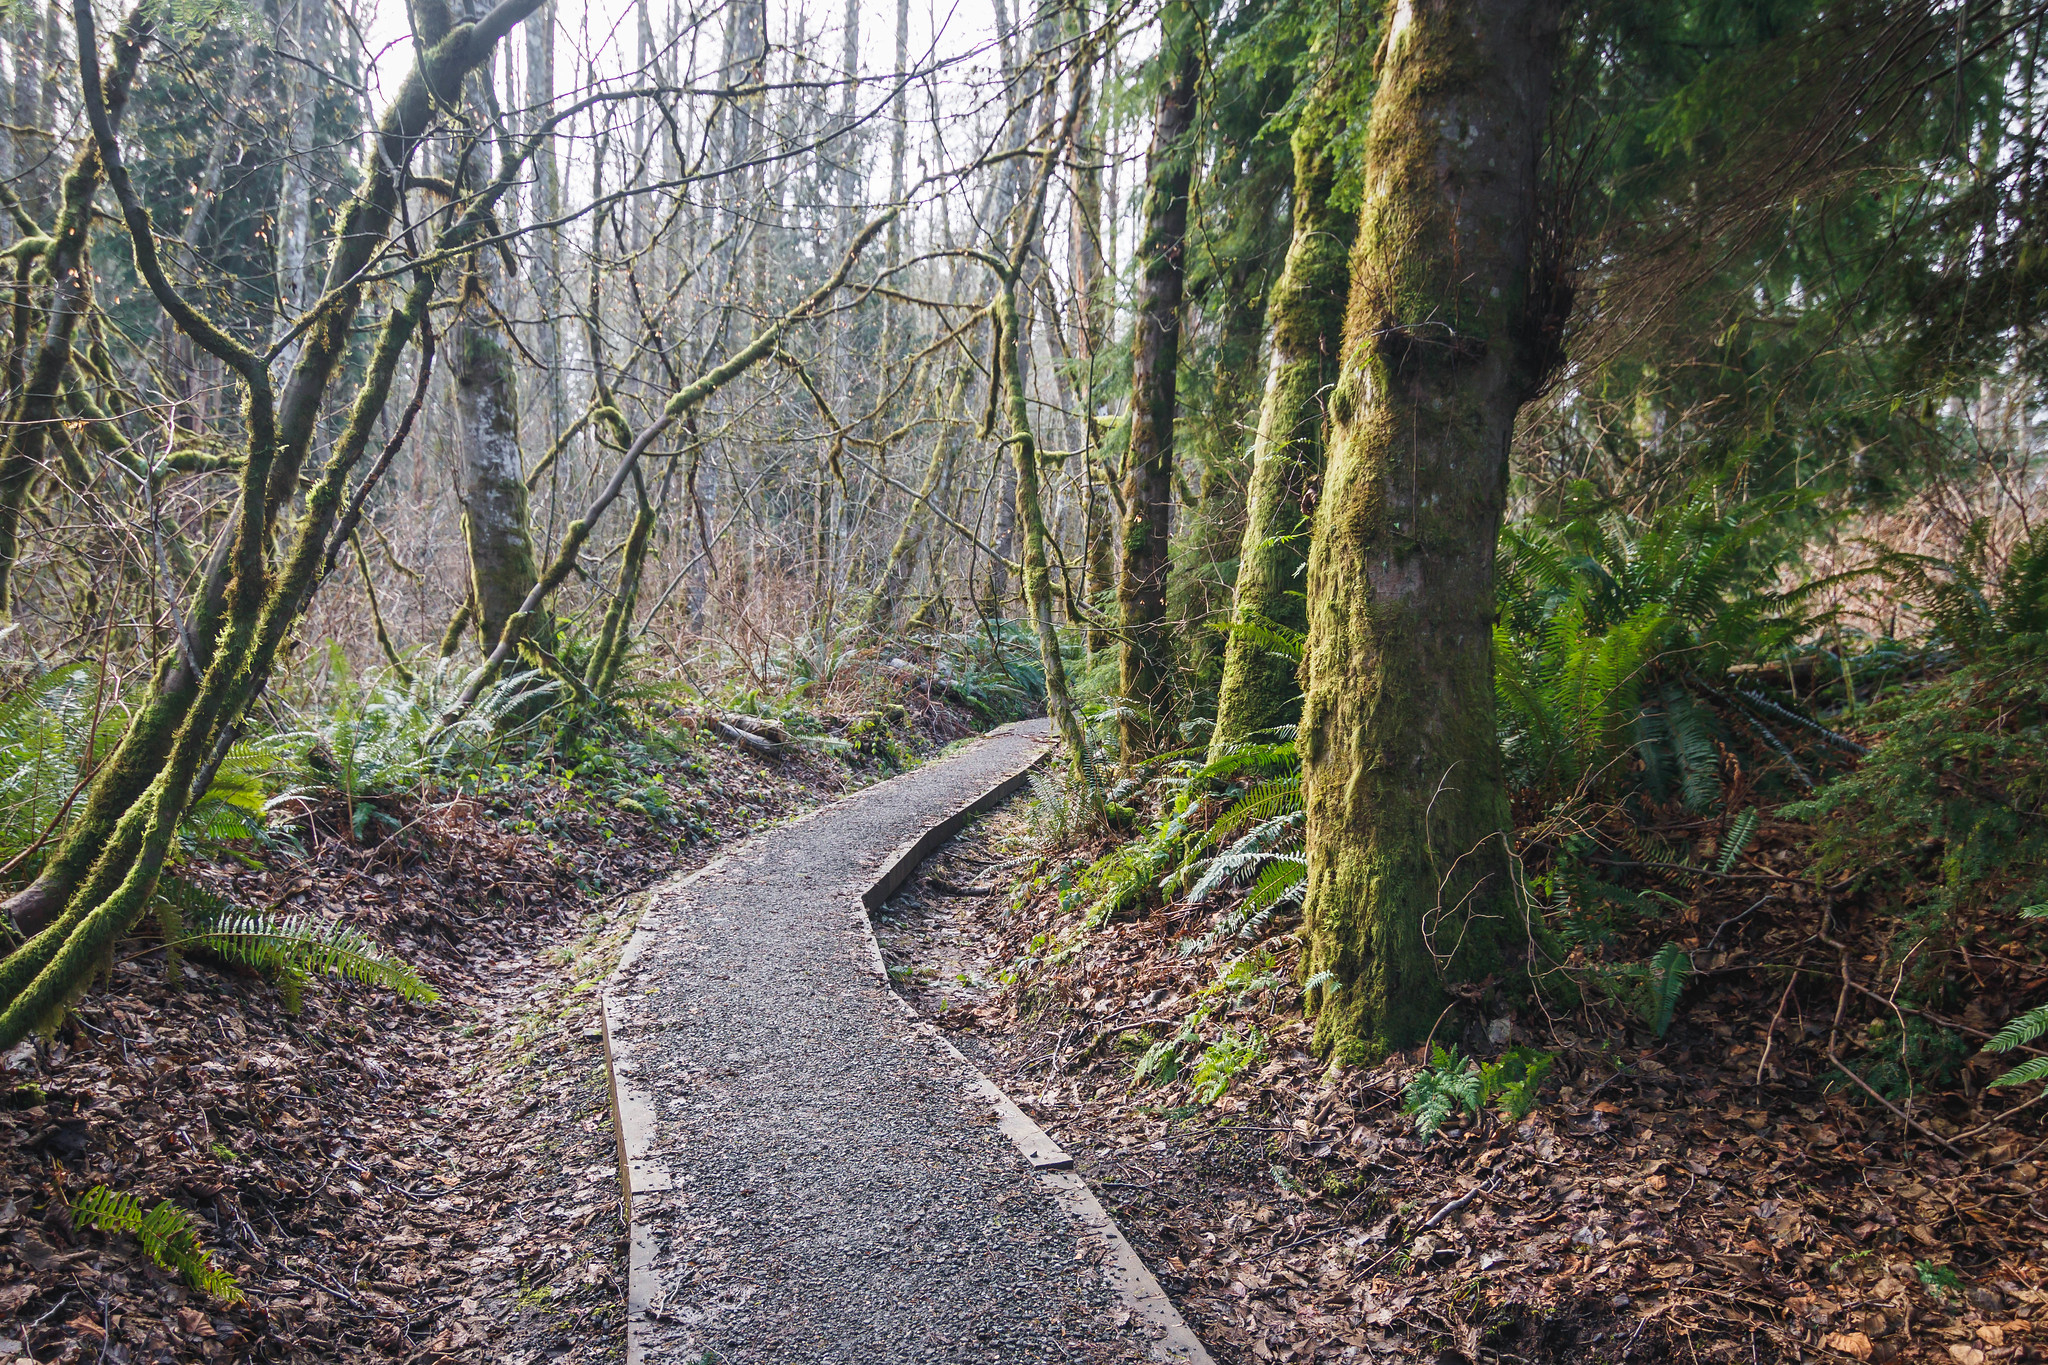 Finding our way out of Cougar Mountain